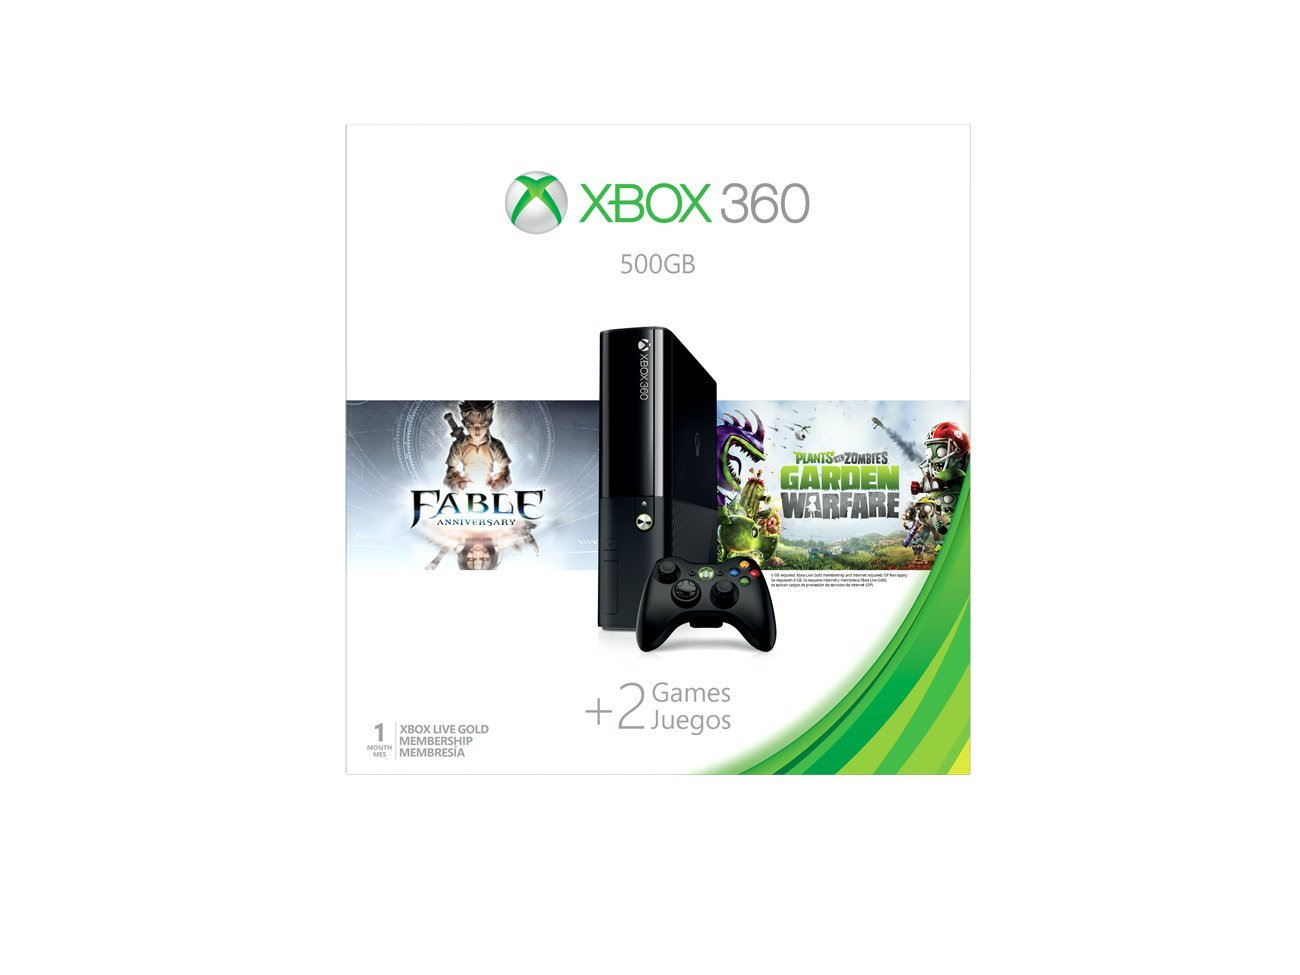 Xbox 360 500GB Console - Fable Anniversary and Plants vs Zombies: Garden Warfare Bundle